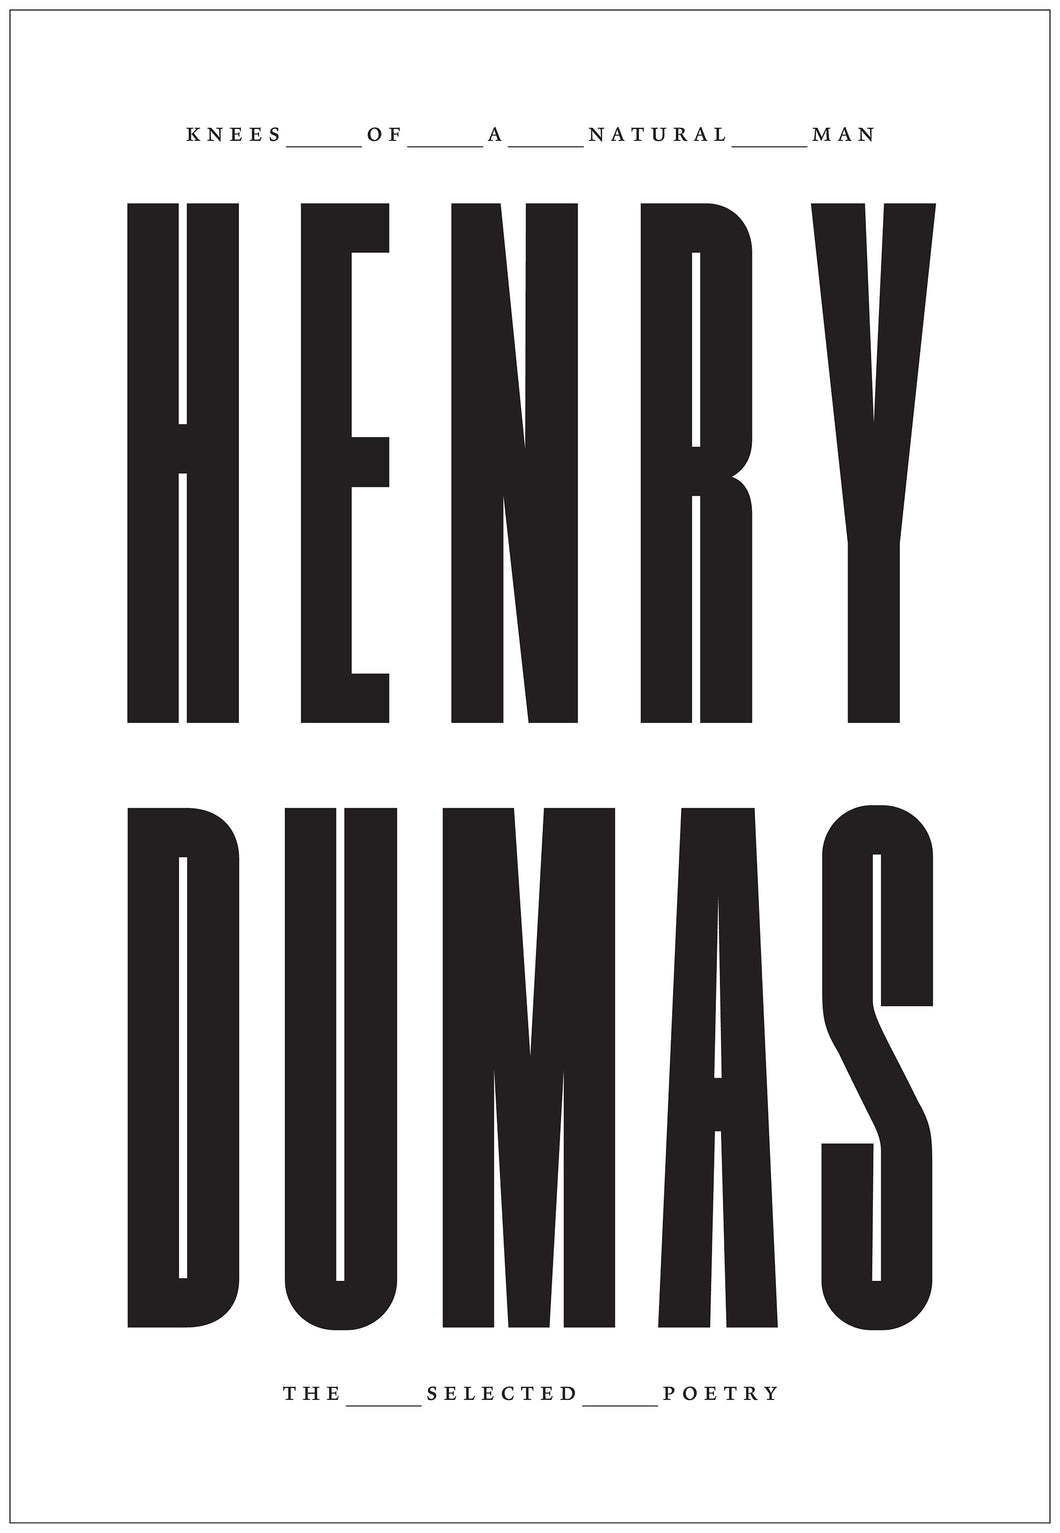 Dumas, Henry: Knees of a Natural Man: The Selected Poetry